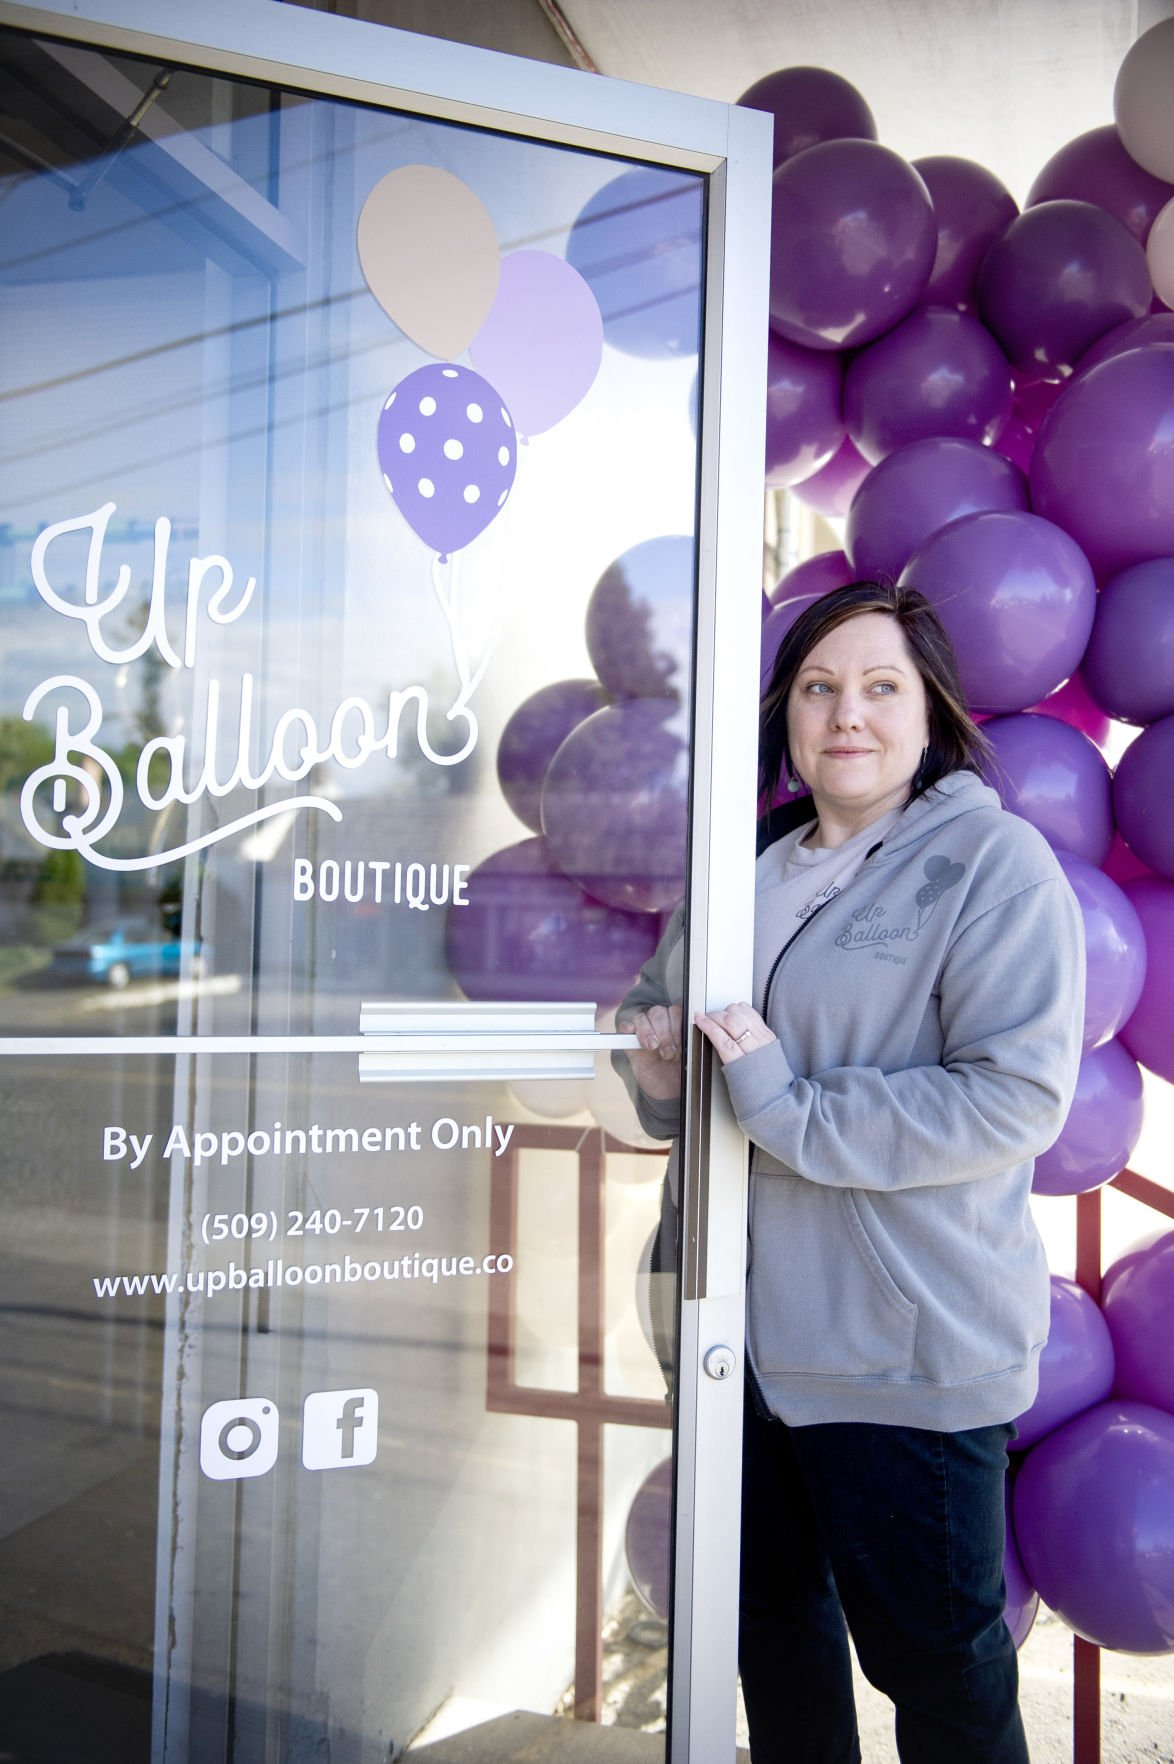 Up Balloon Boutique